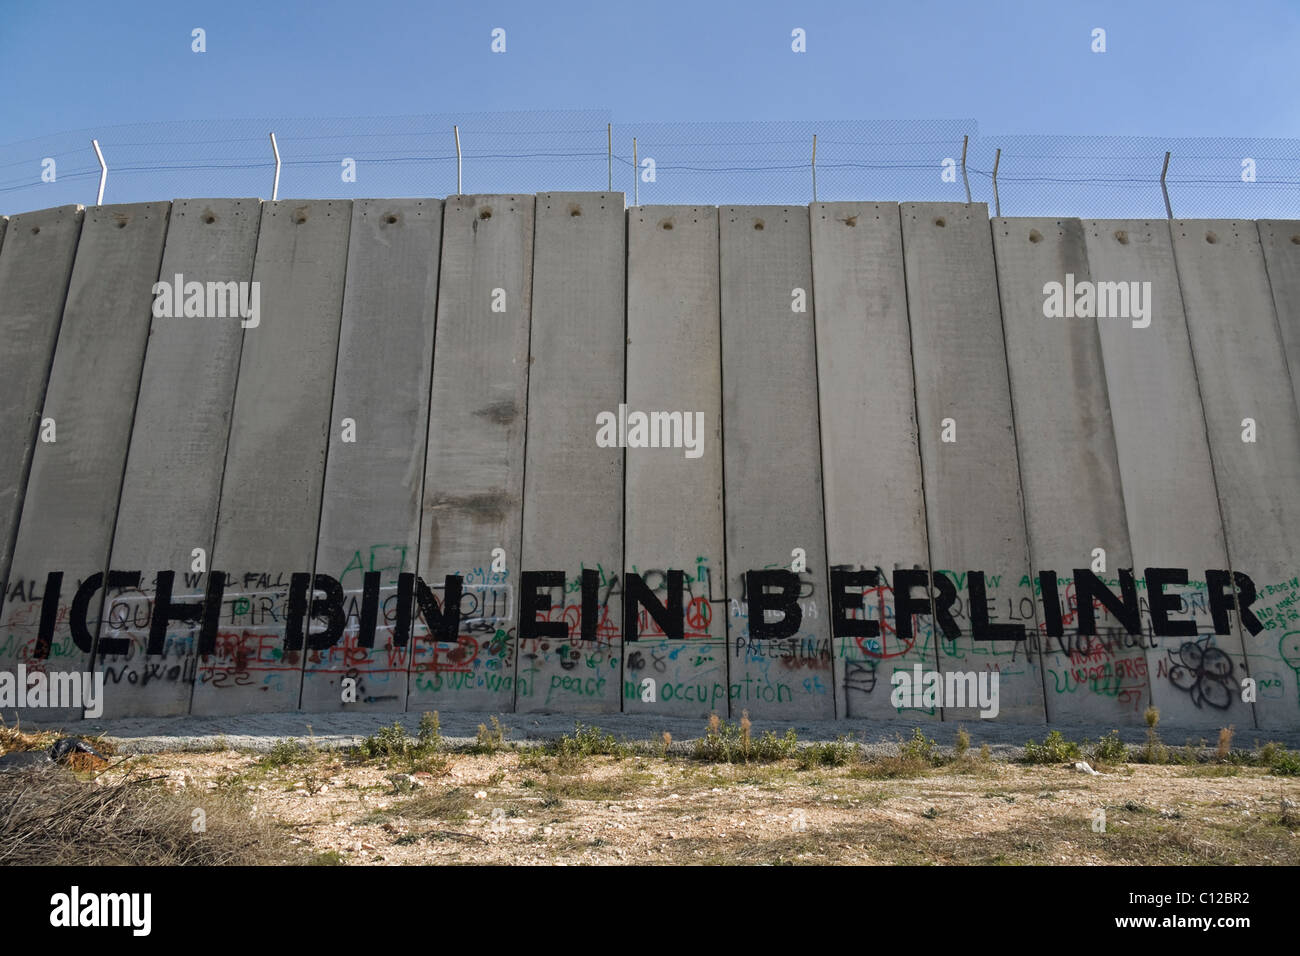 A graffiti on the separation wall, Palestine - Stock Image